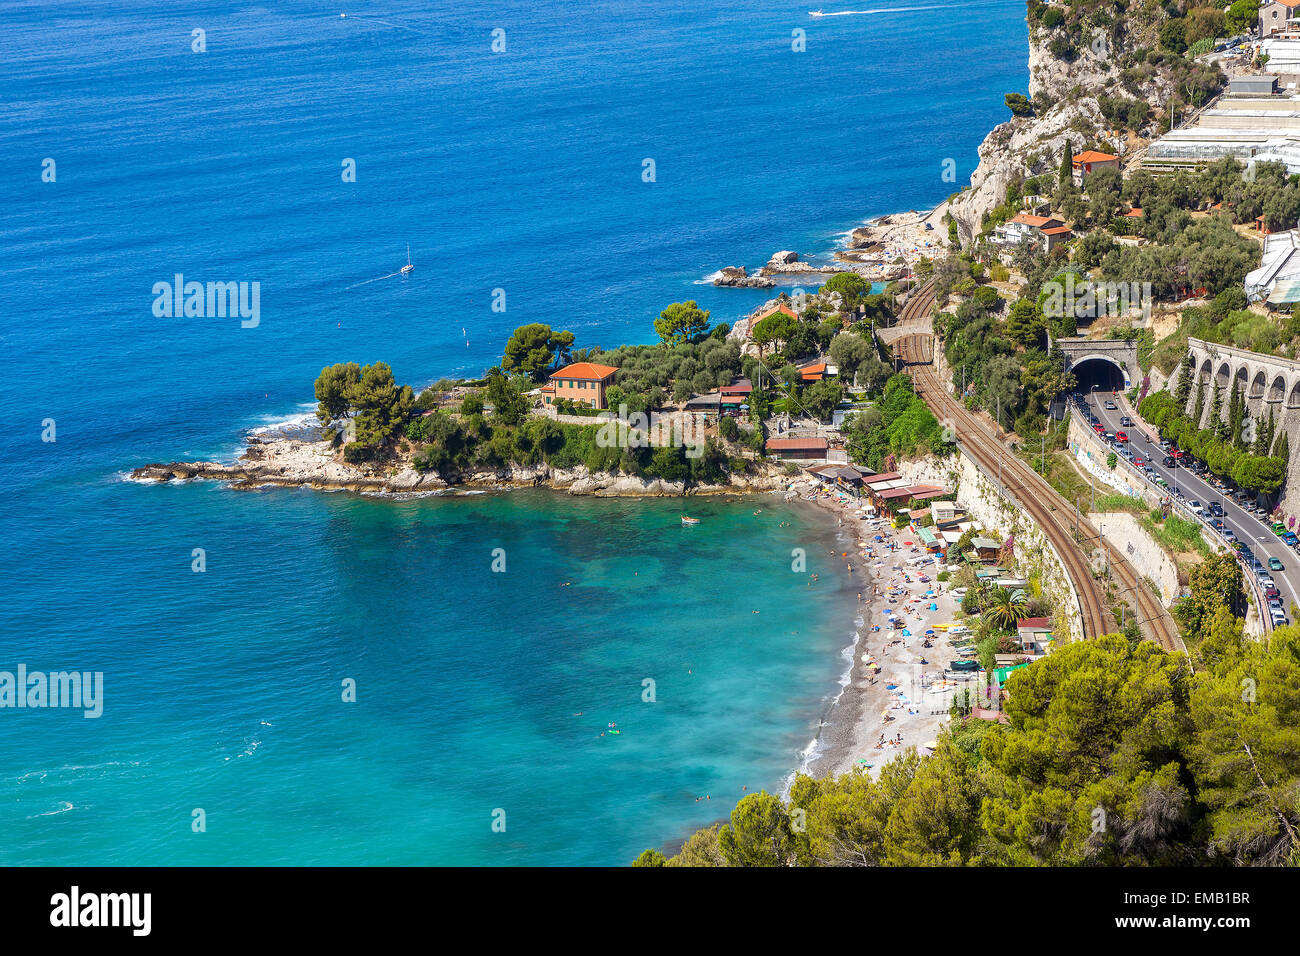 Bay and small beach on Mediterranean sea on French Riviera (view from above). - Stock Image